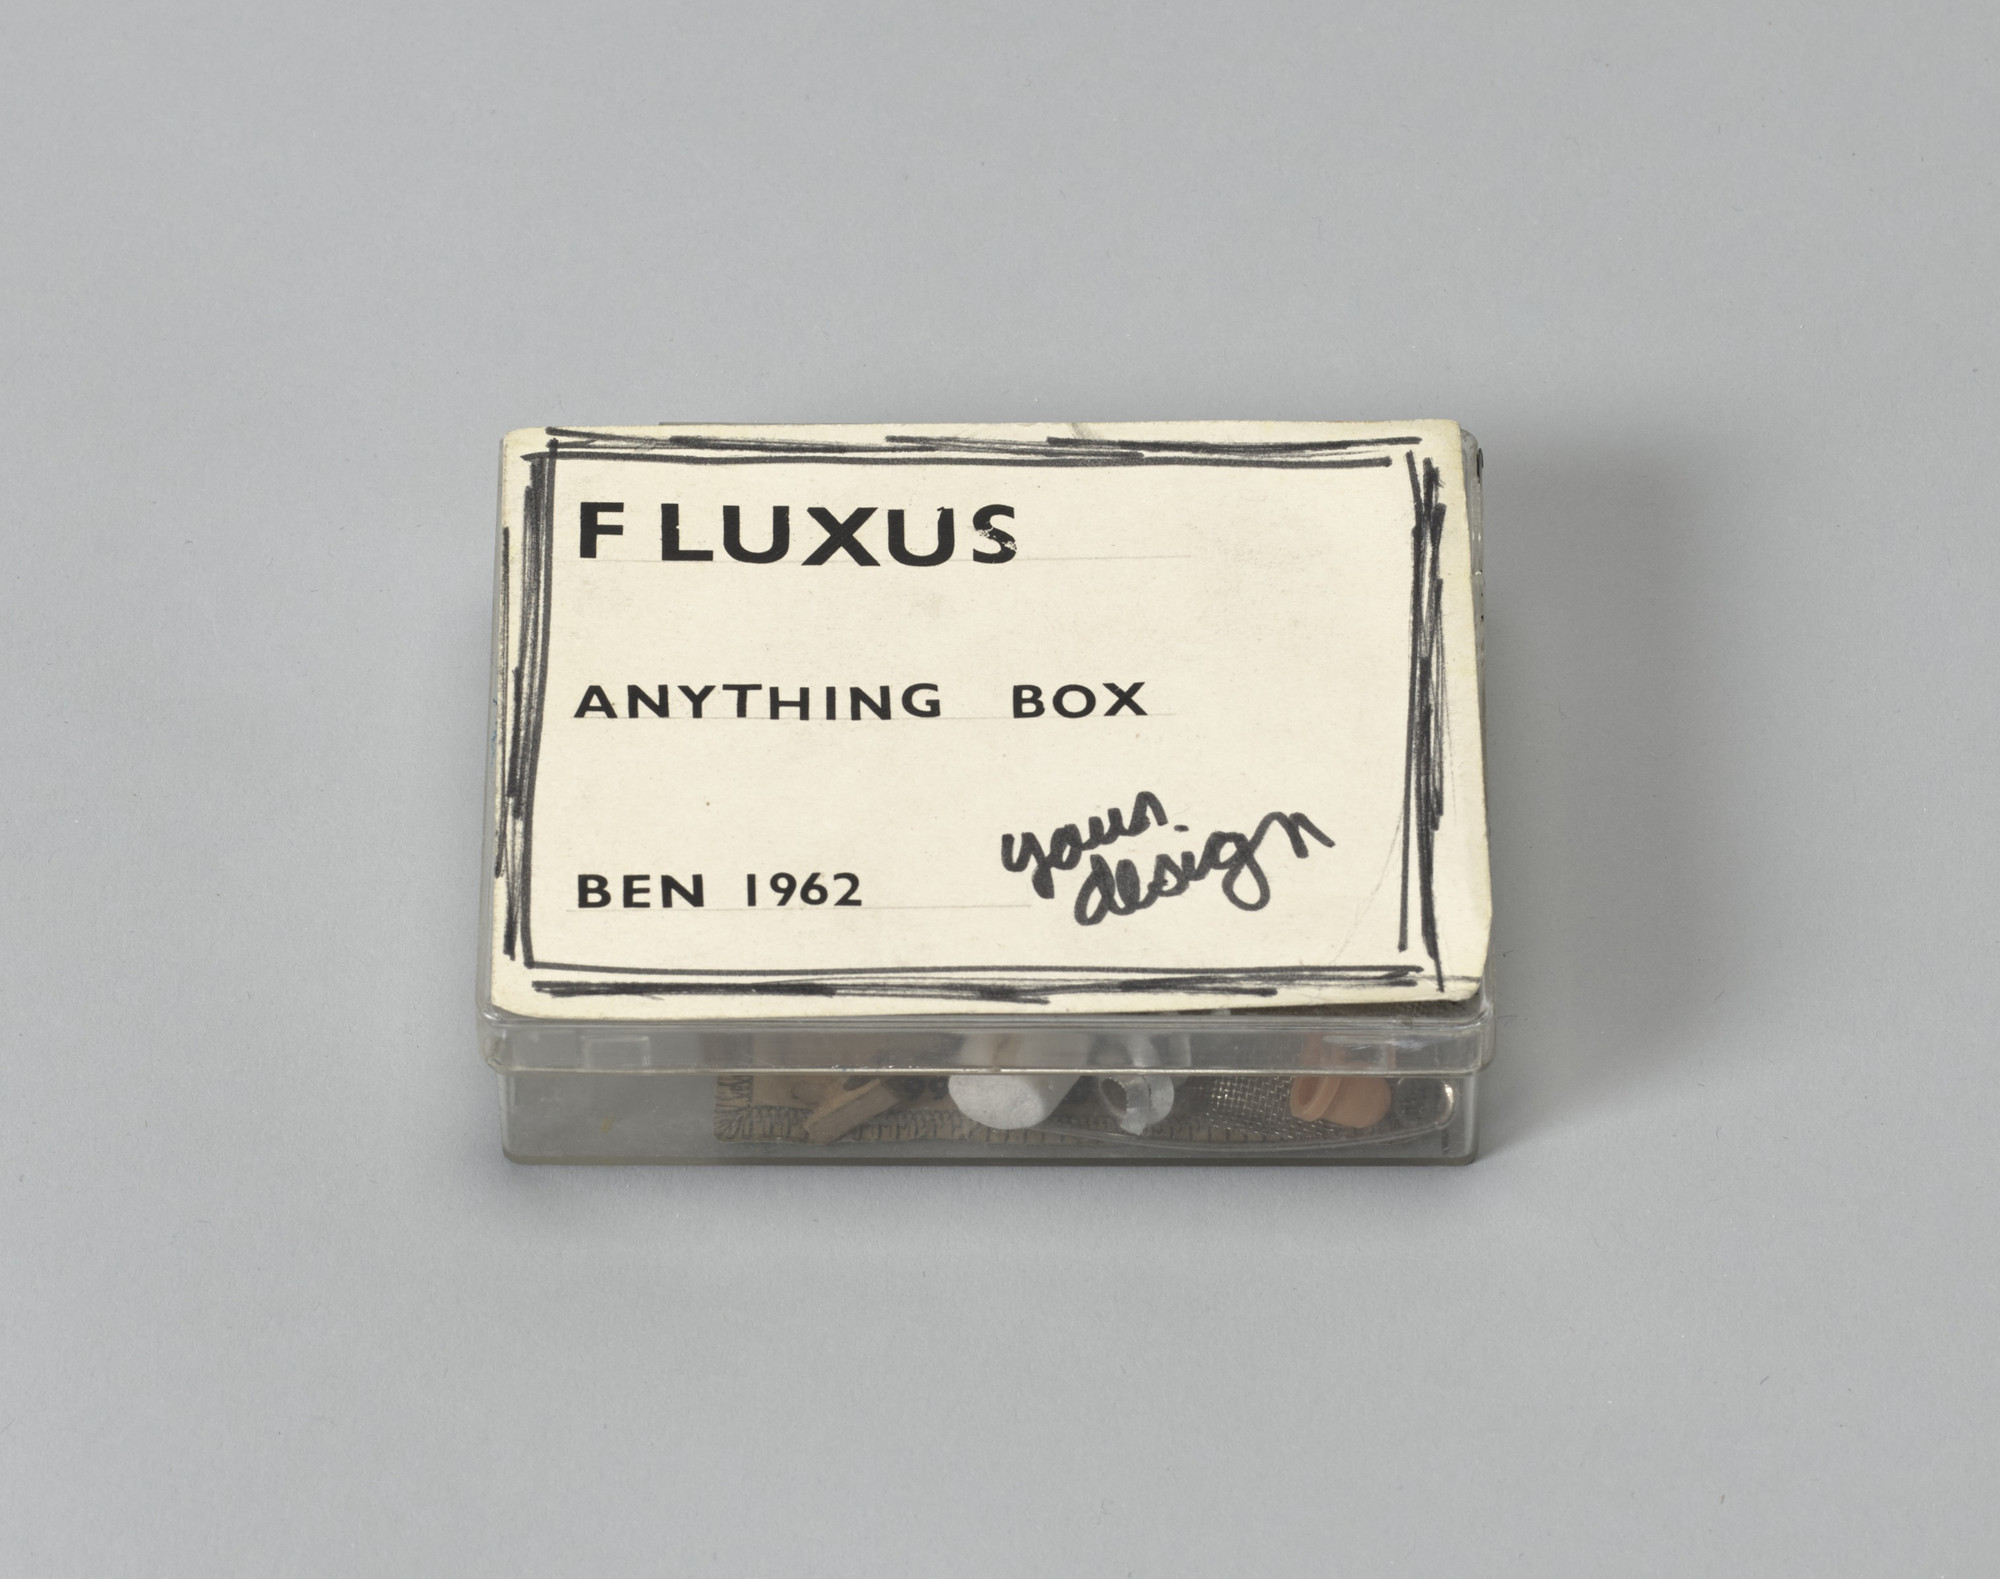 Ben Vautier. Fluxus Anything Box. 1962